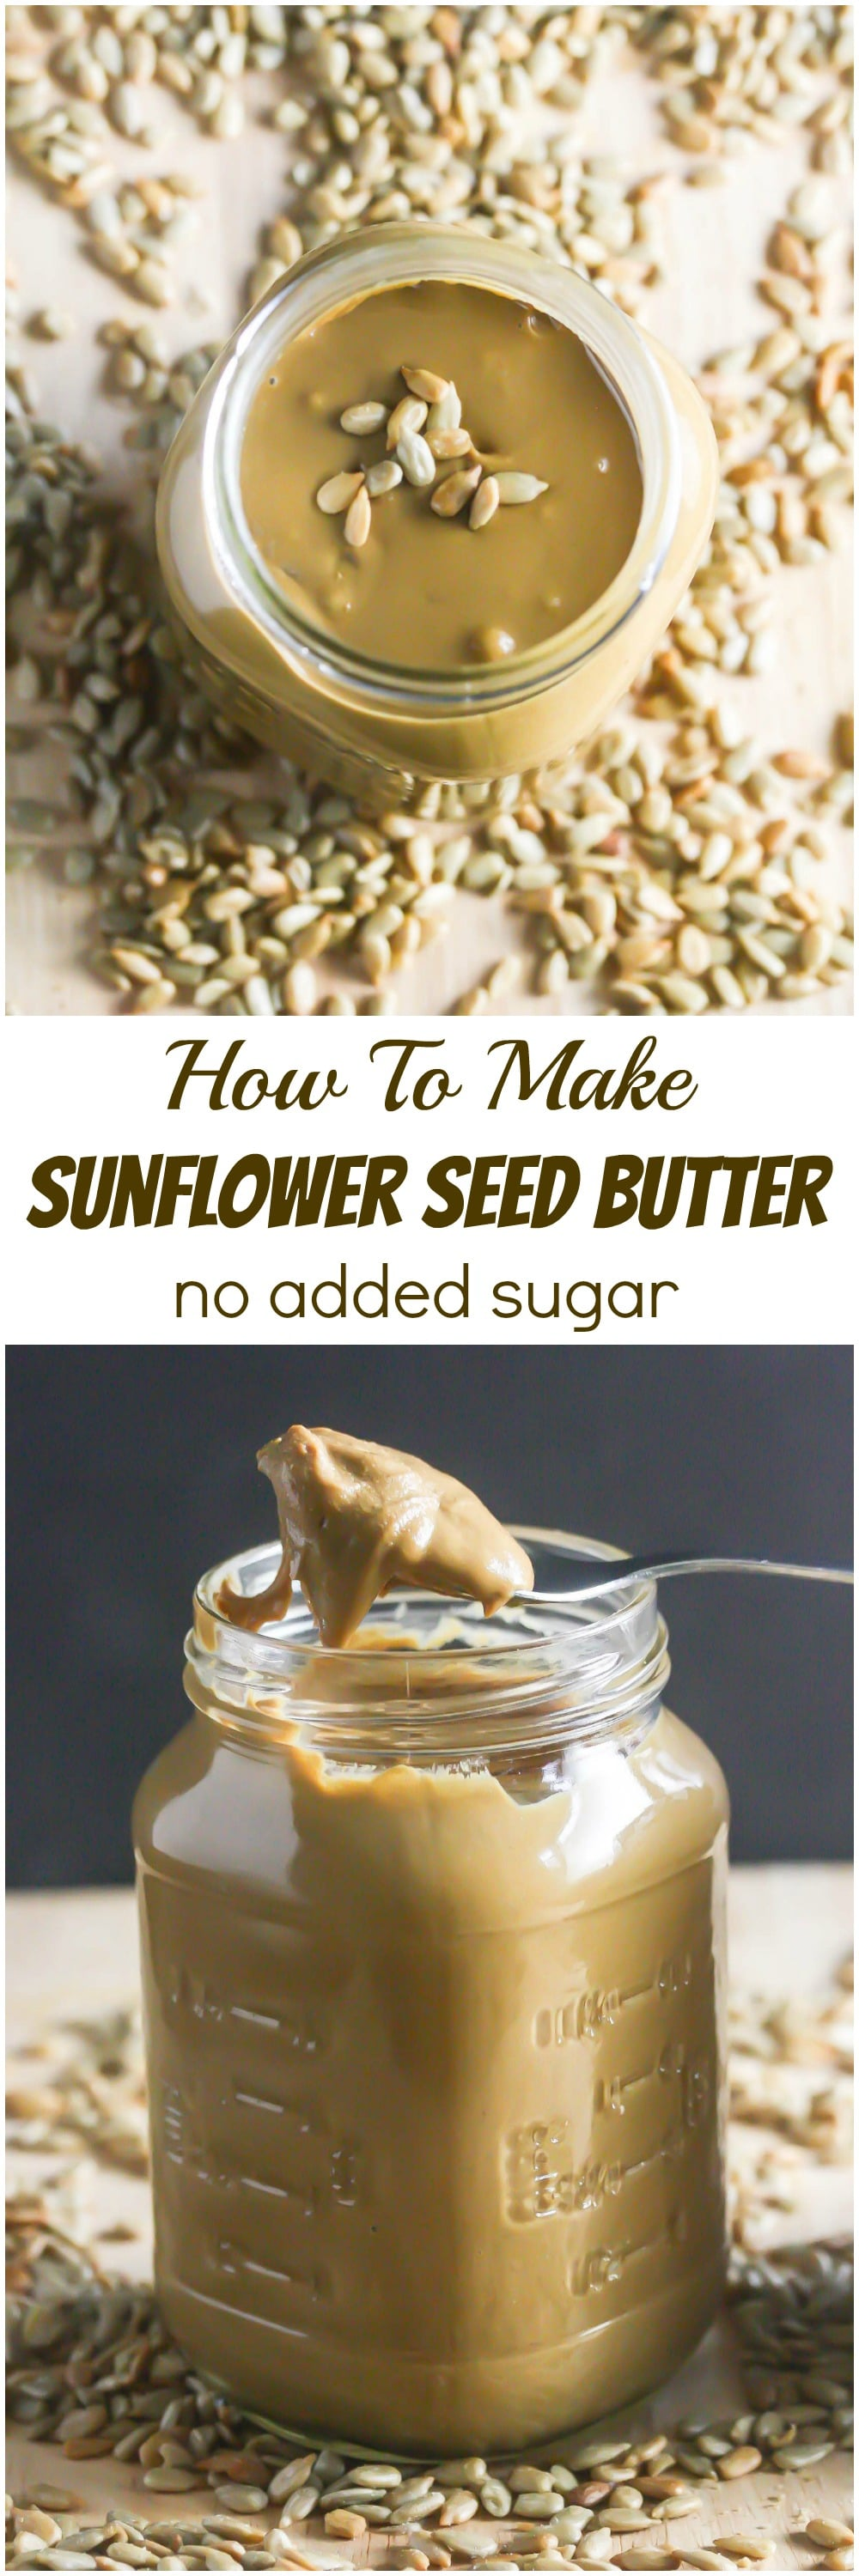 Homemade Sunflower Seed Butter is so easy to make and this one has no added sugar! www.laurenkellynutrition.com